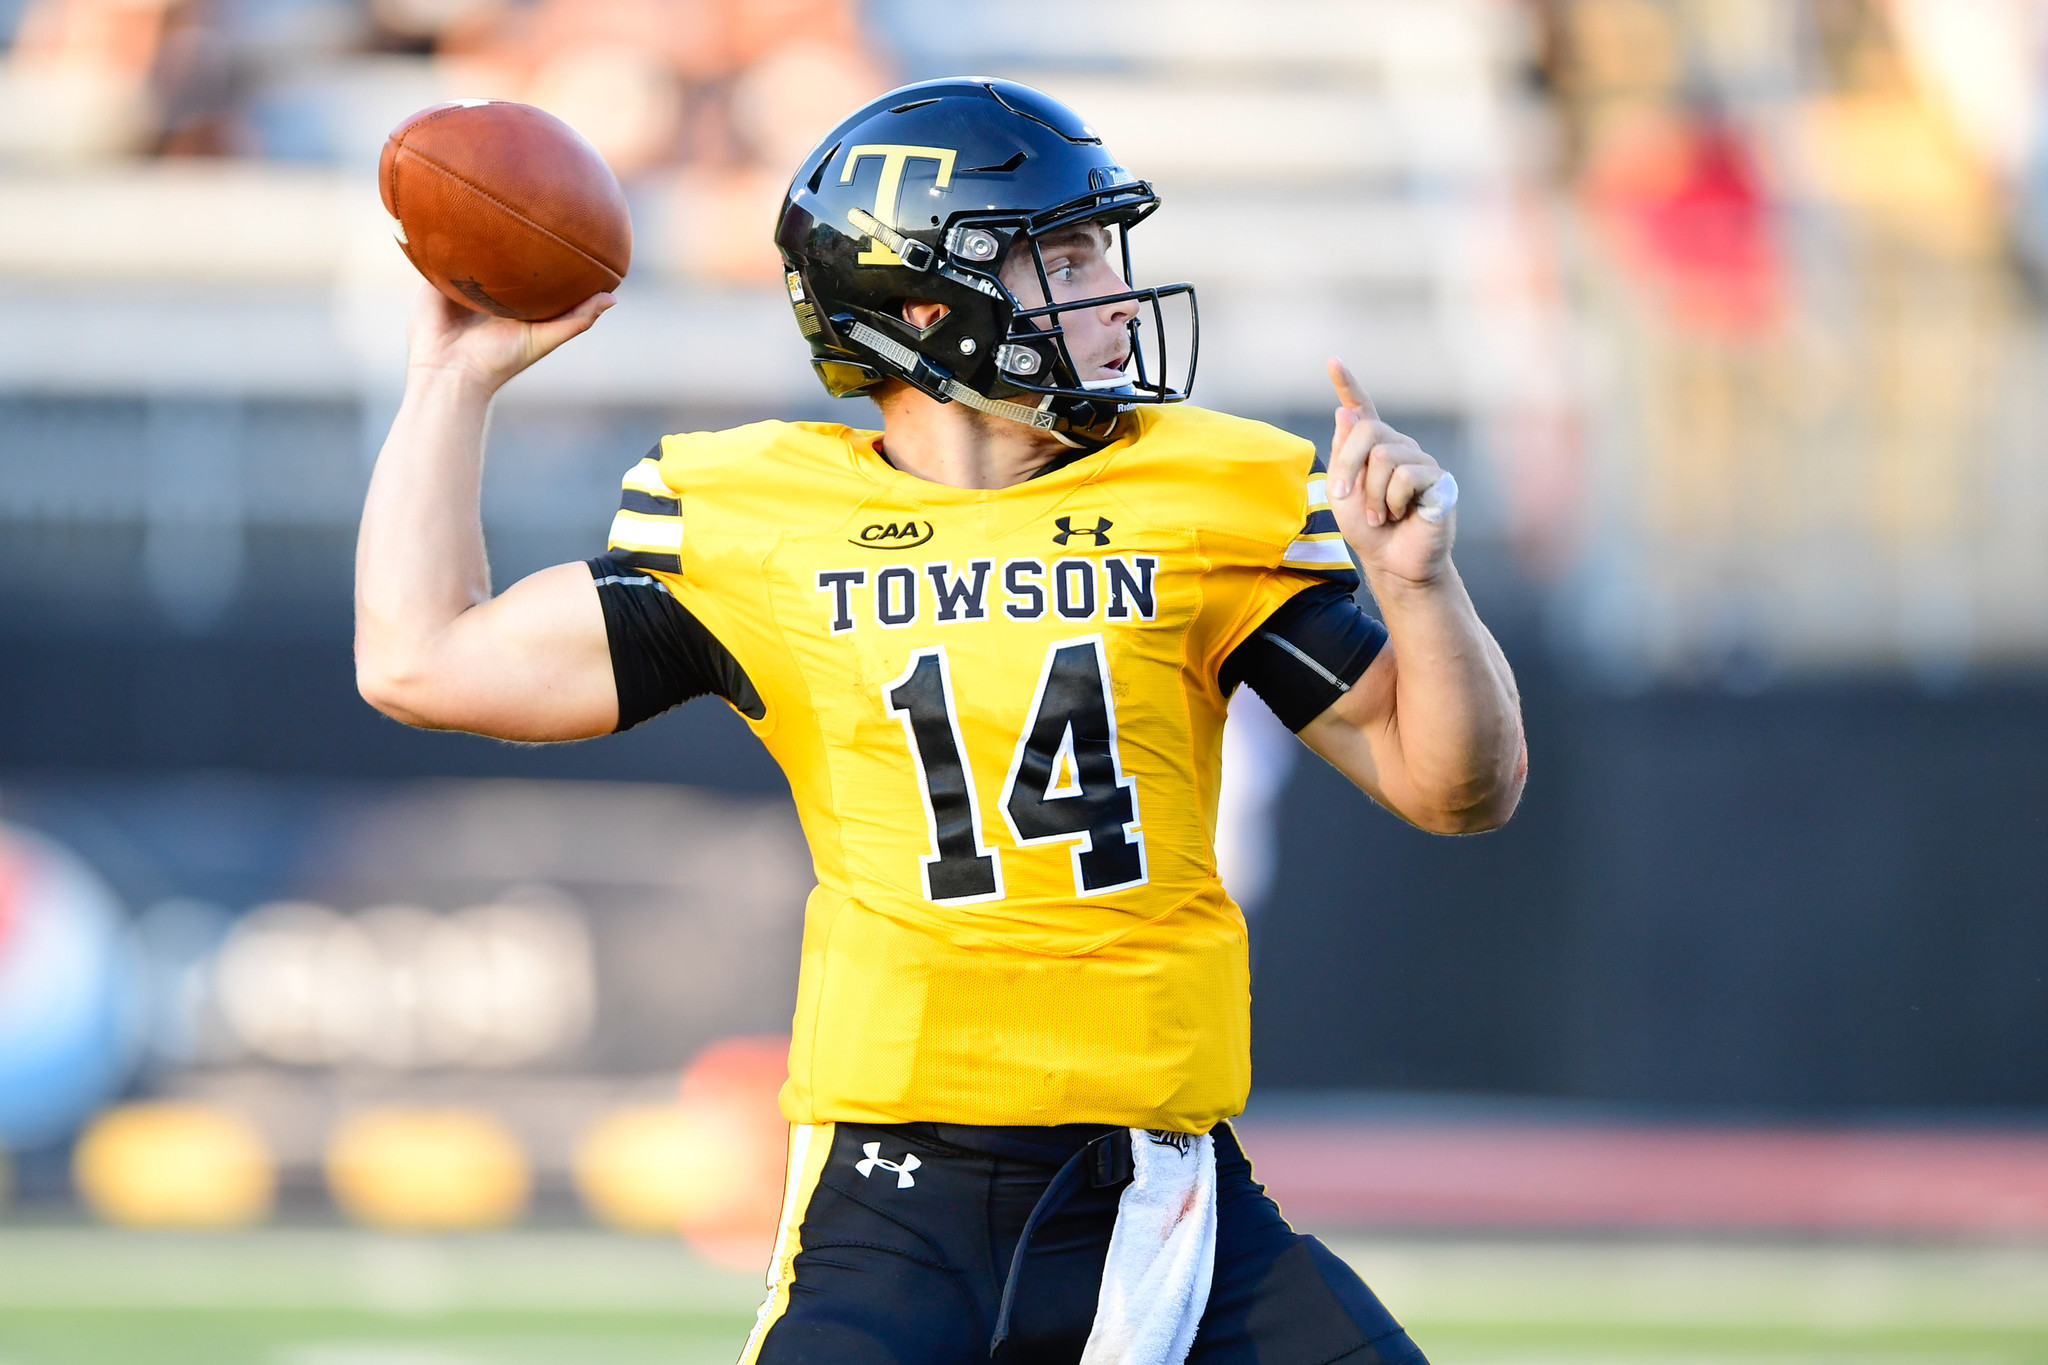 Brothers In Arms Towson Qb Tom Flacco May Be Cool Like Joe But He S Establishing A Style All His Own Baltimore Sun Joe runs short of money from time to time, and would like to borrow from his fellow dorm residents to get by, and would. baltimore sun